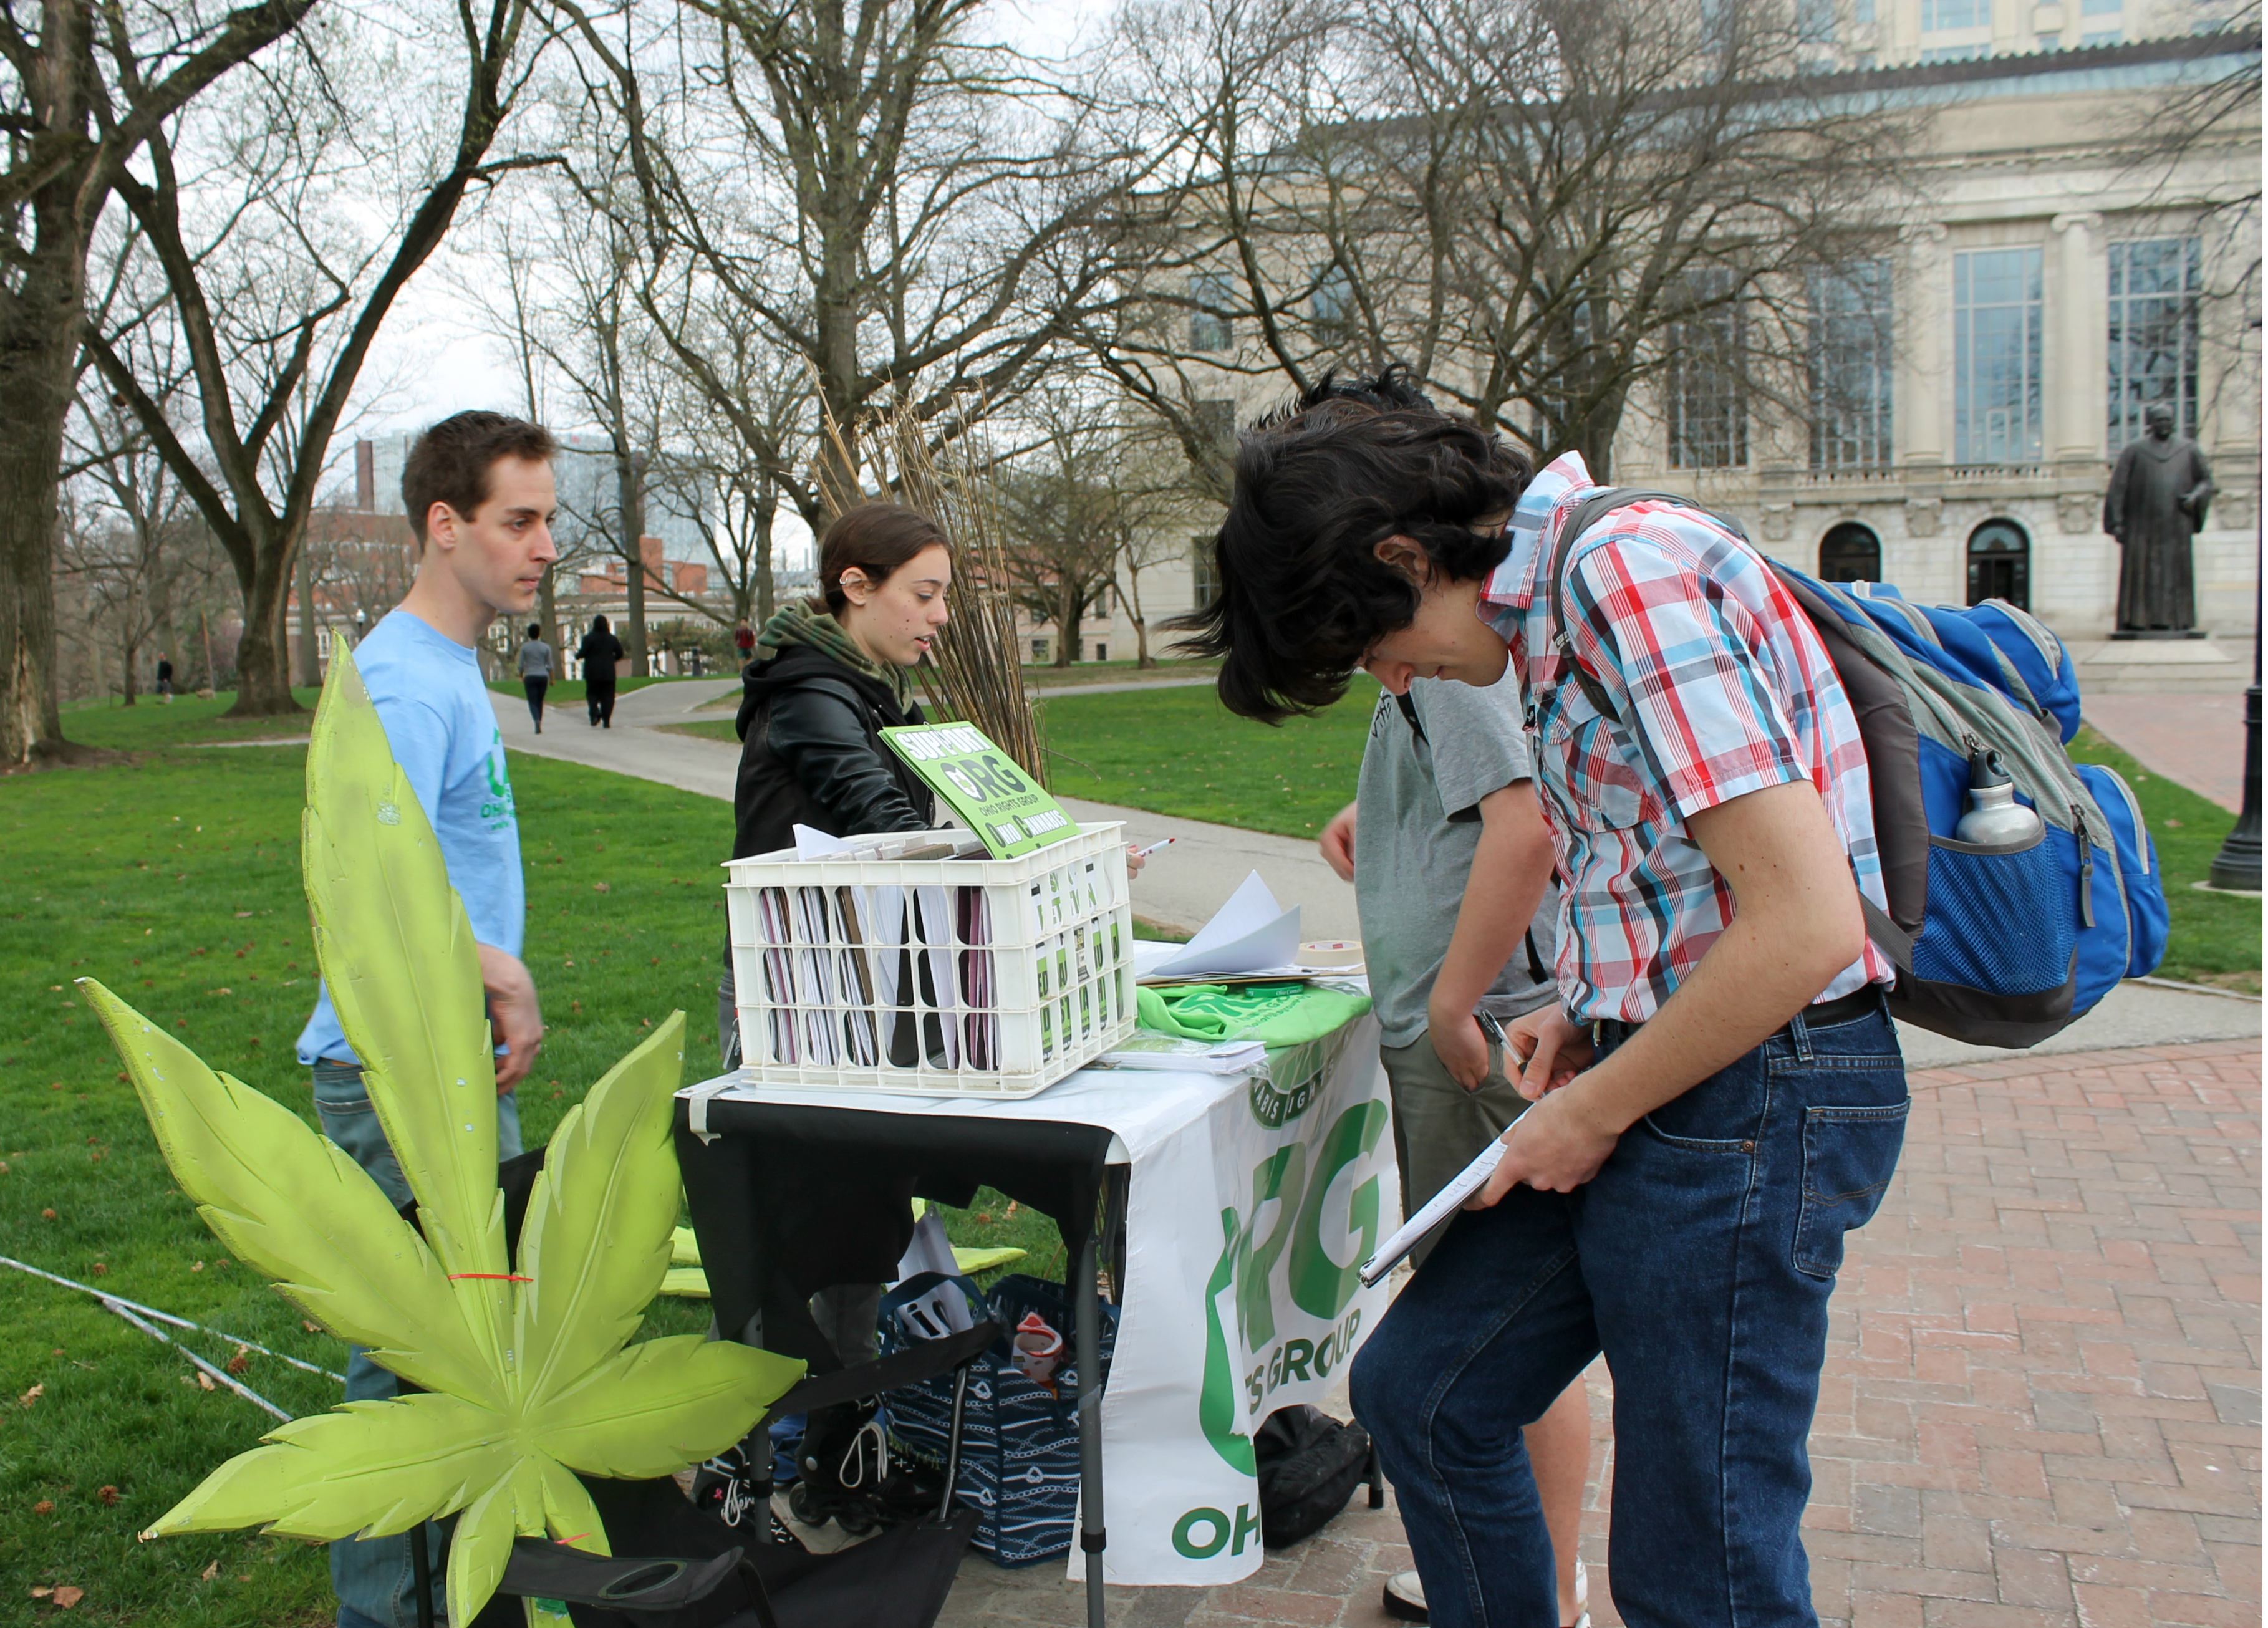 Student activists Nick Neely and Robin Iritz run a booth for the Ohio Rights Group - OSU Chapter on April 14, 2015 at The Ohio State University in Columbus, Ohio. At the booth, registered voters could sign a petition to legalize the use of medical and recreational marijuana in Ohio.